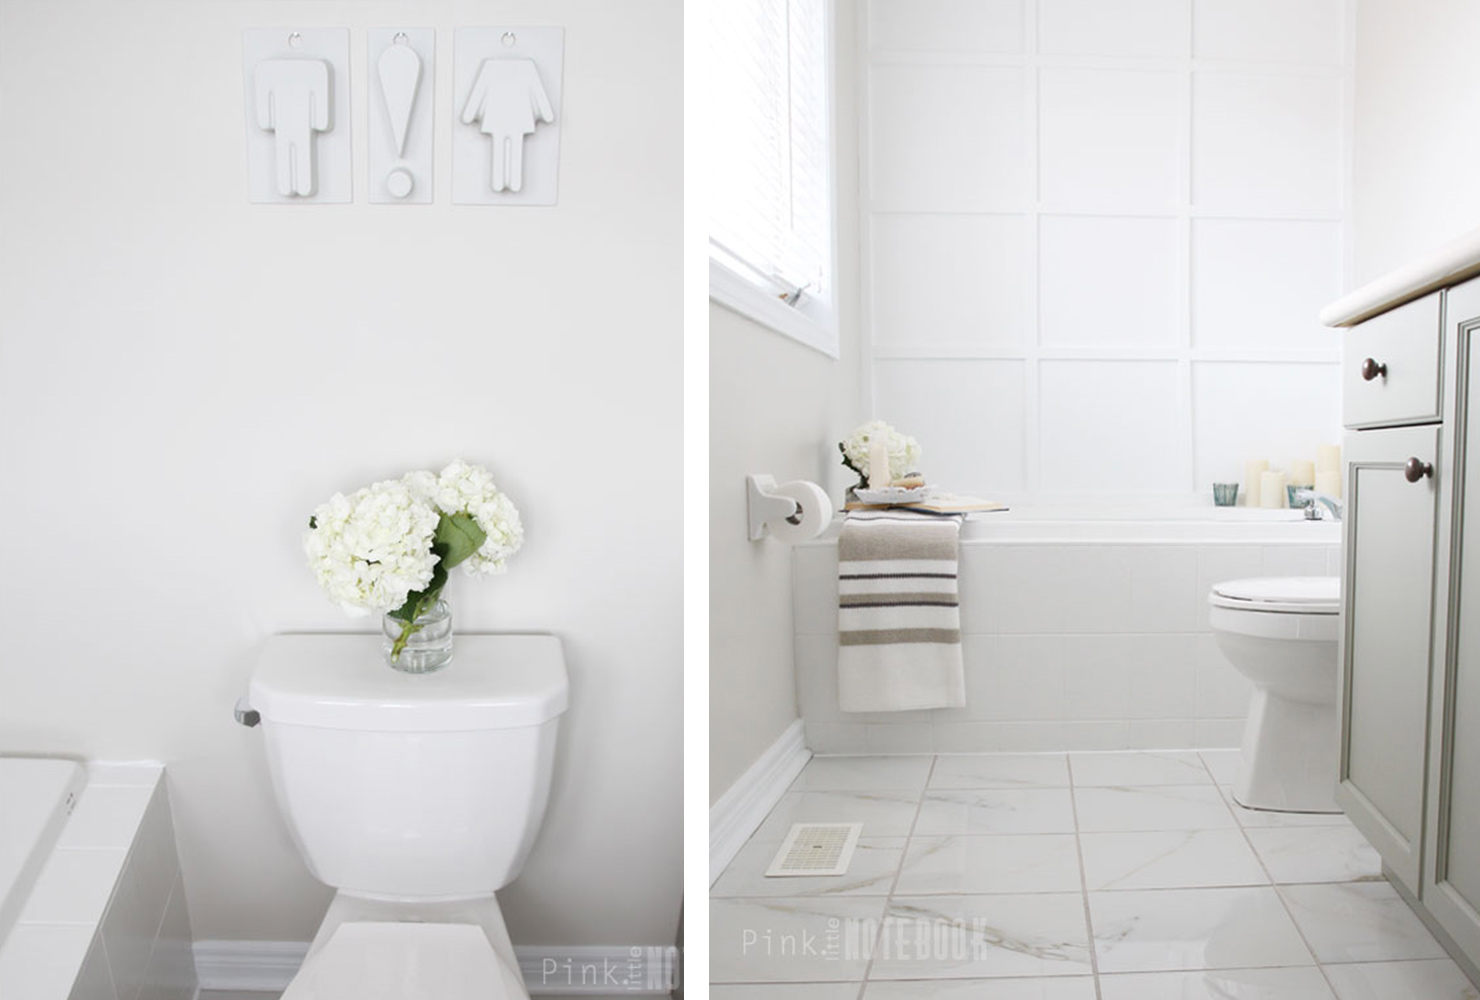 Bathroom Decoration Idea by Pink Little Notebook - Shutterfly